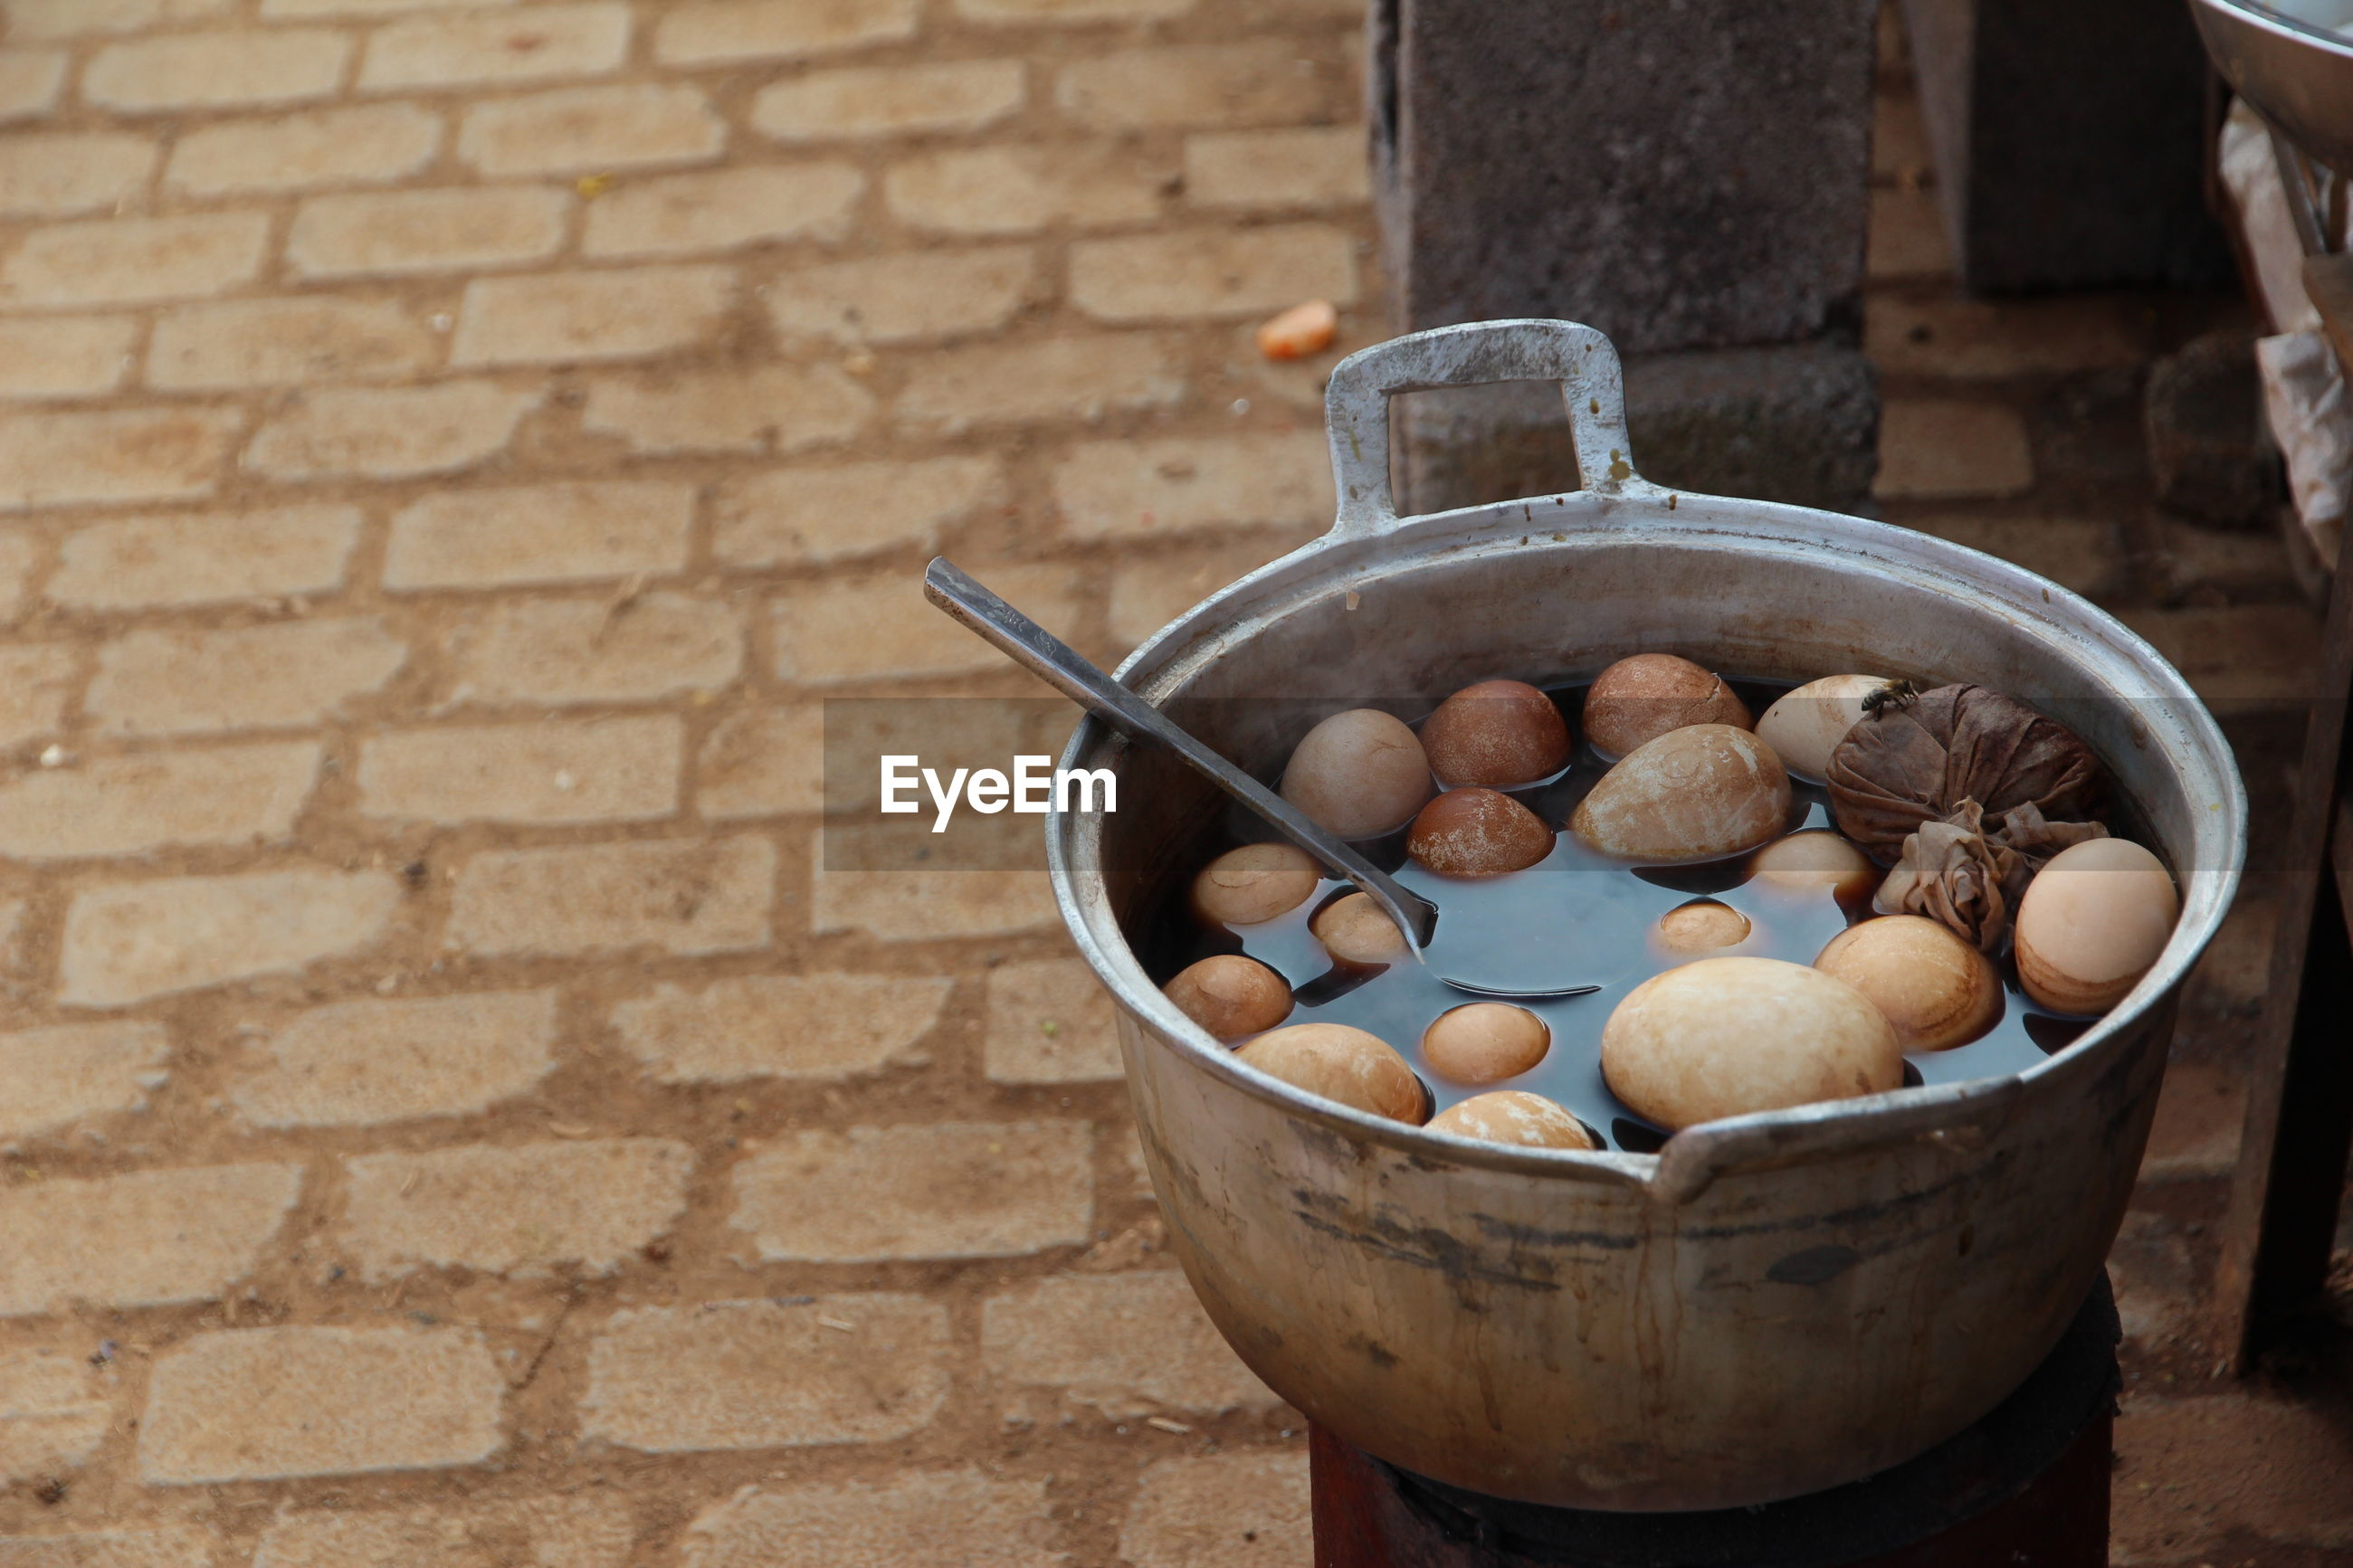 Close-up of boiled eggs in cooking pot for sale on street